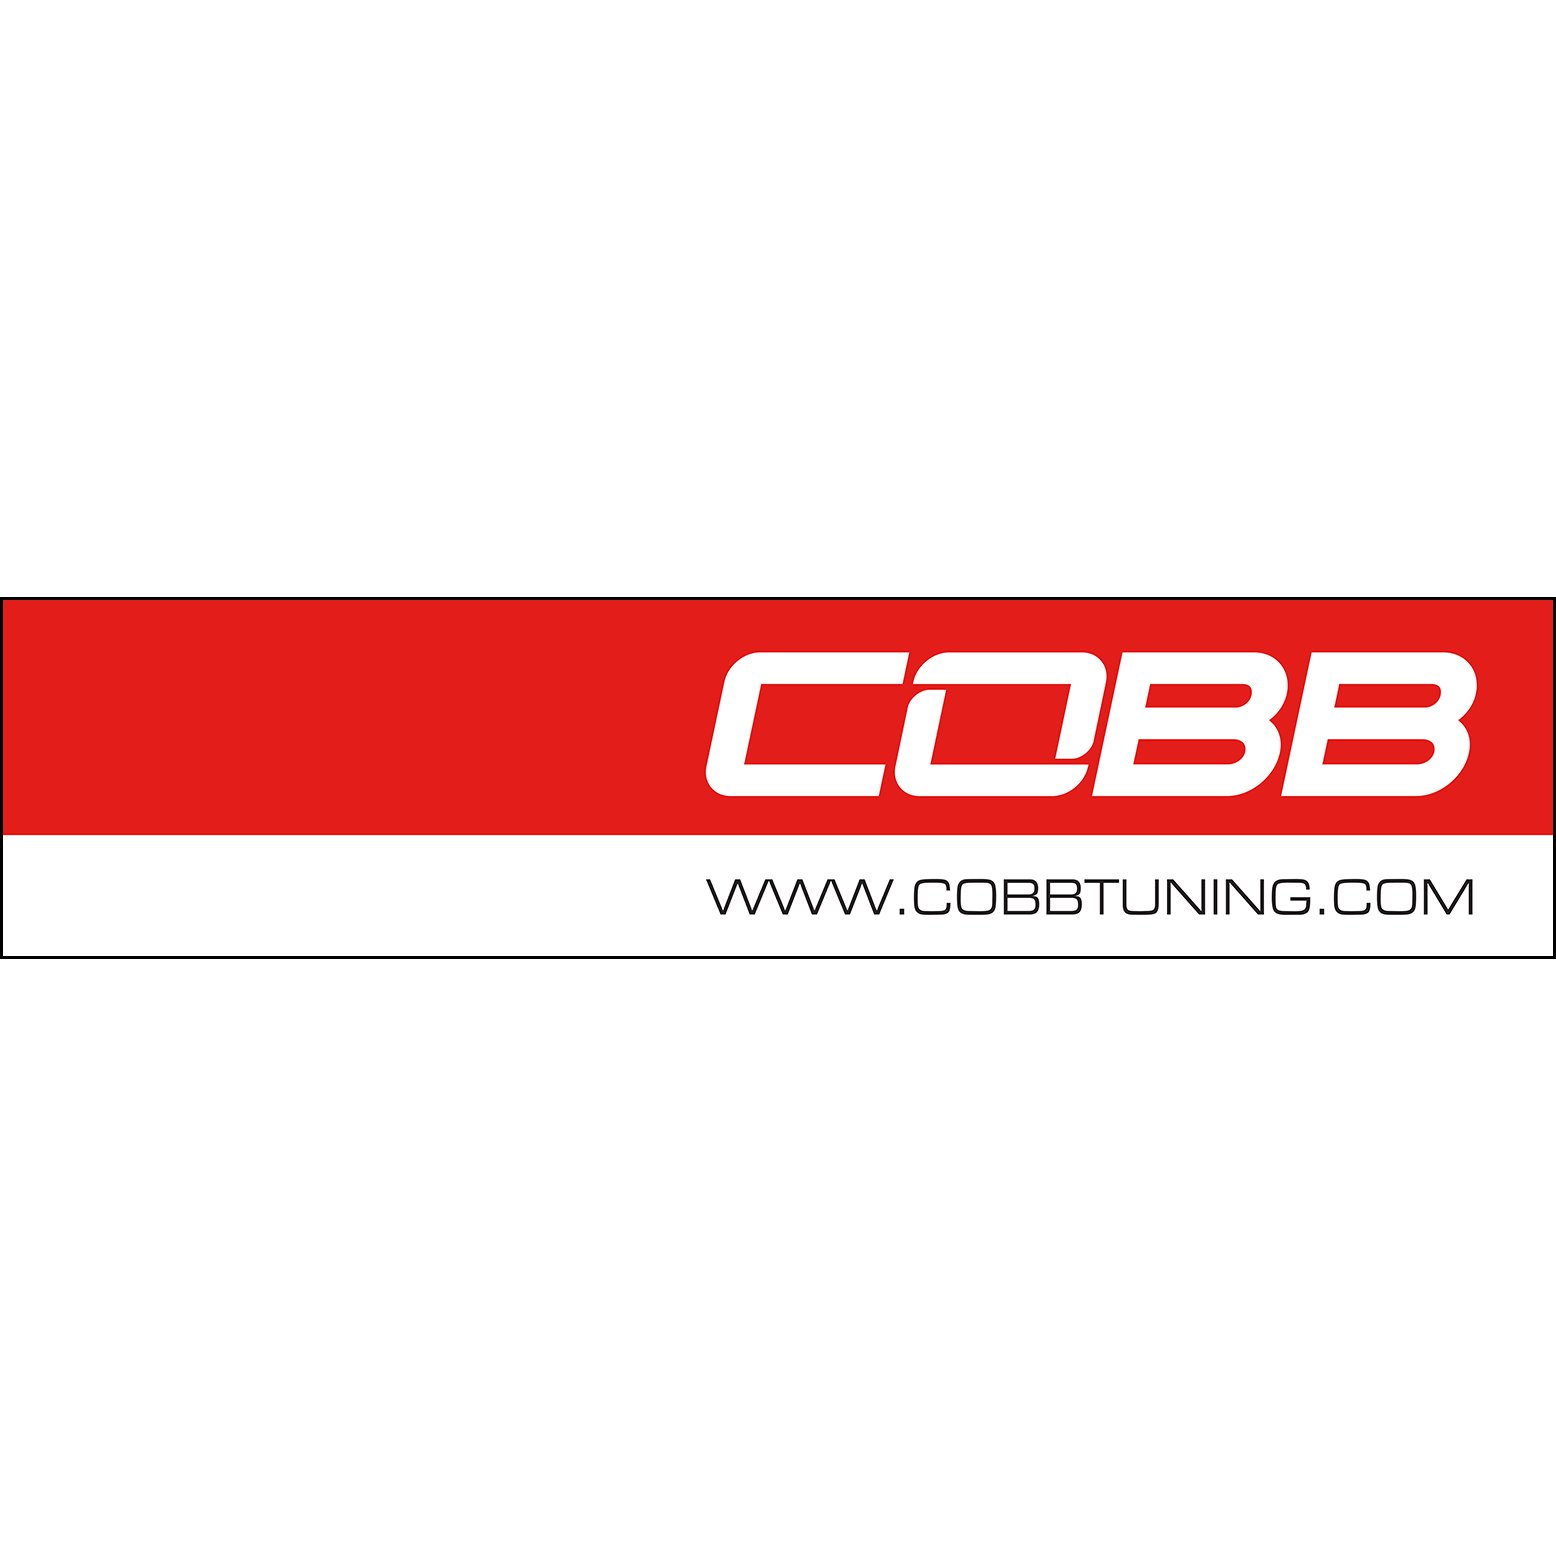 COBB 8x2ft Hanging Vinyl Banner